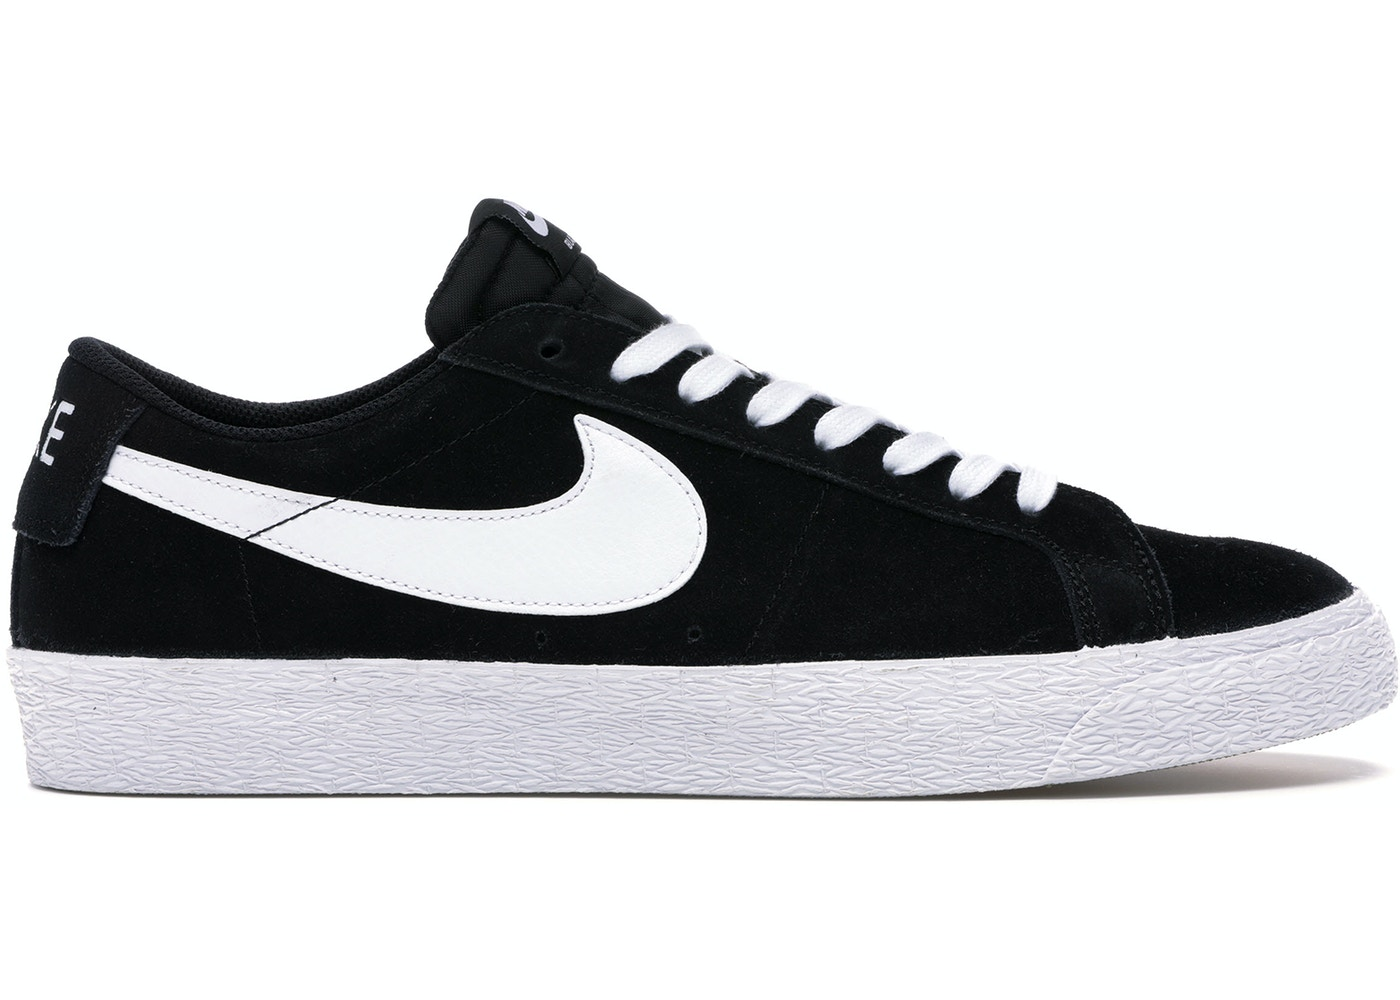 hot sale online 9efab a41f8 Buy Nike SB Other Shoes   Deadstock Sneakers